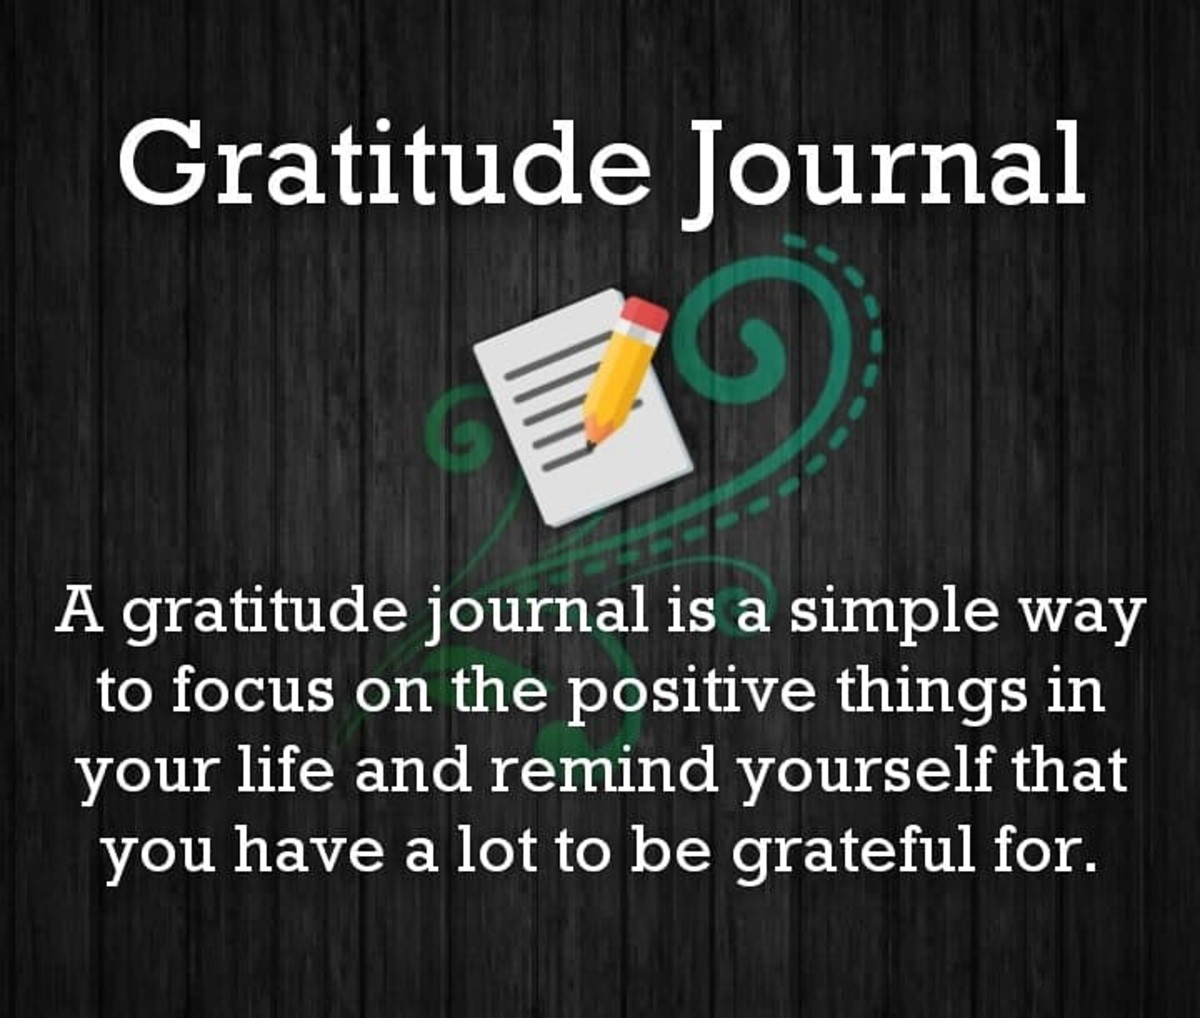 How a Gratitude Journal Can Help You Heal From Trauma